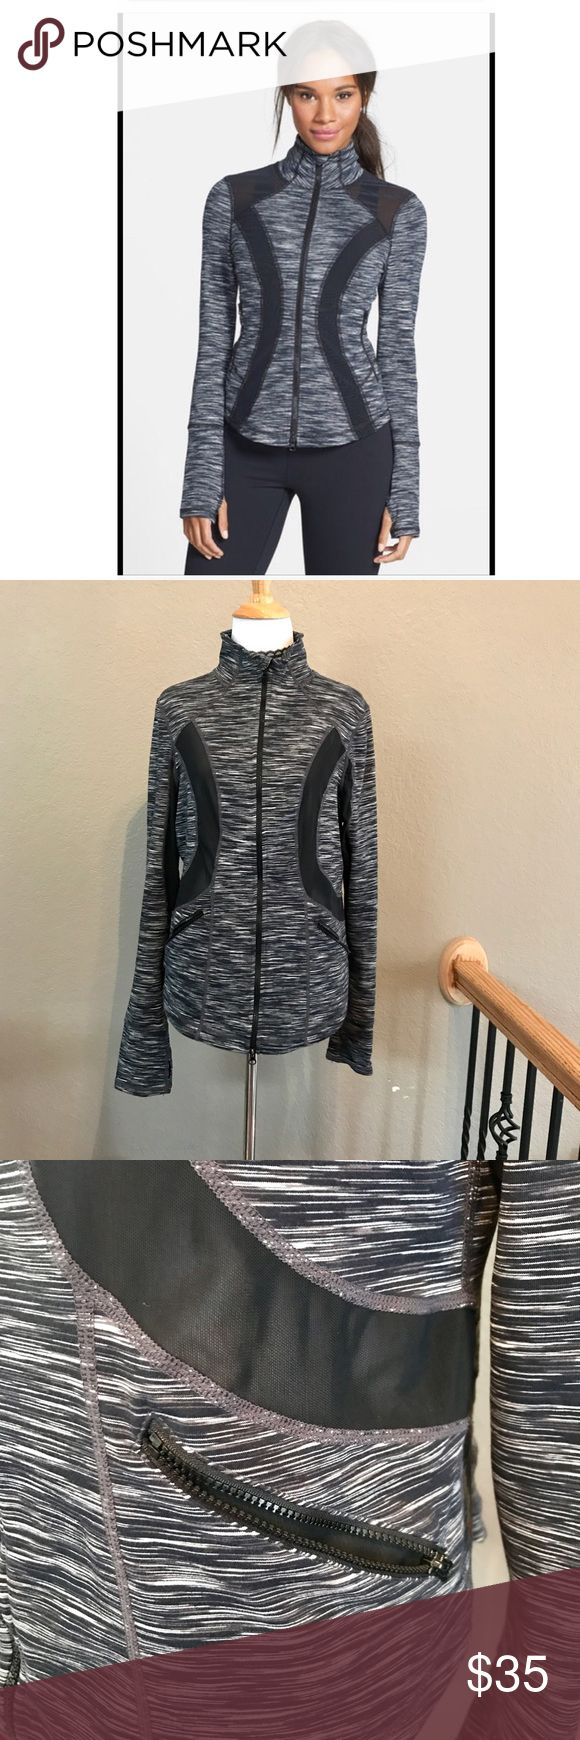 Zella Halo training jacket First photo is similar Nordstrom stock photo.In excellent preowned condition.No stains no snags.Size L Zella Tops Sweatshirts & Hoodies